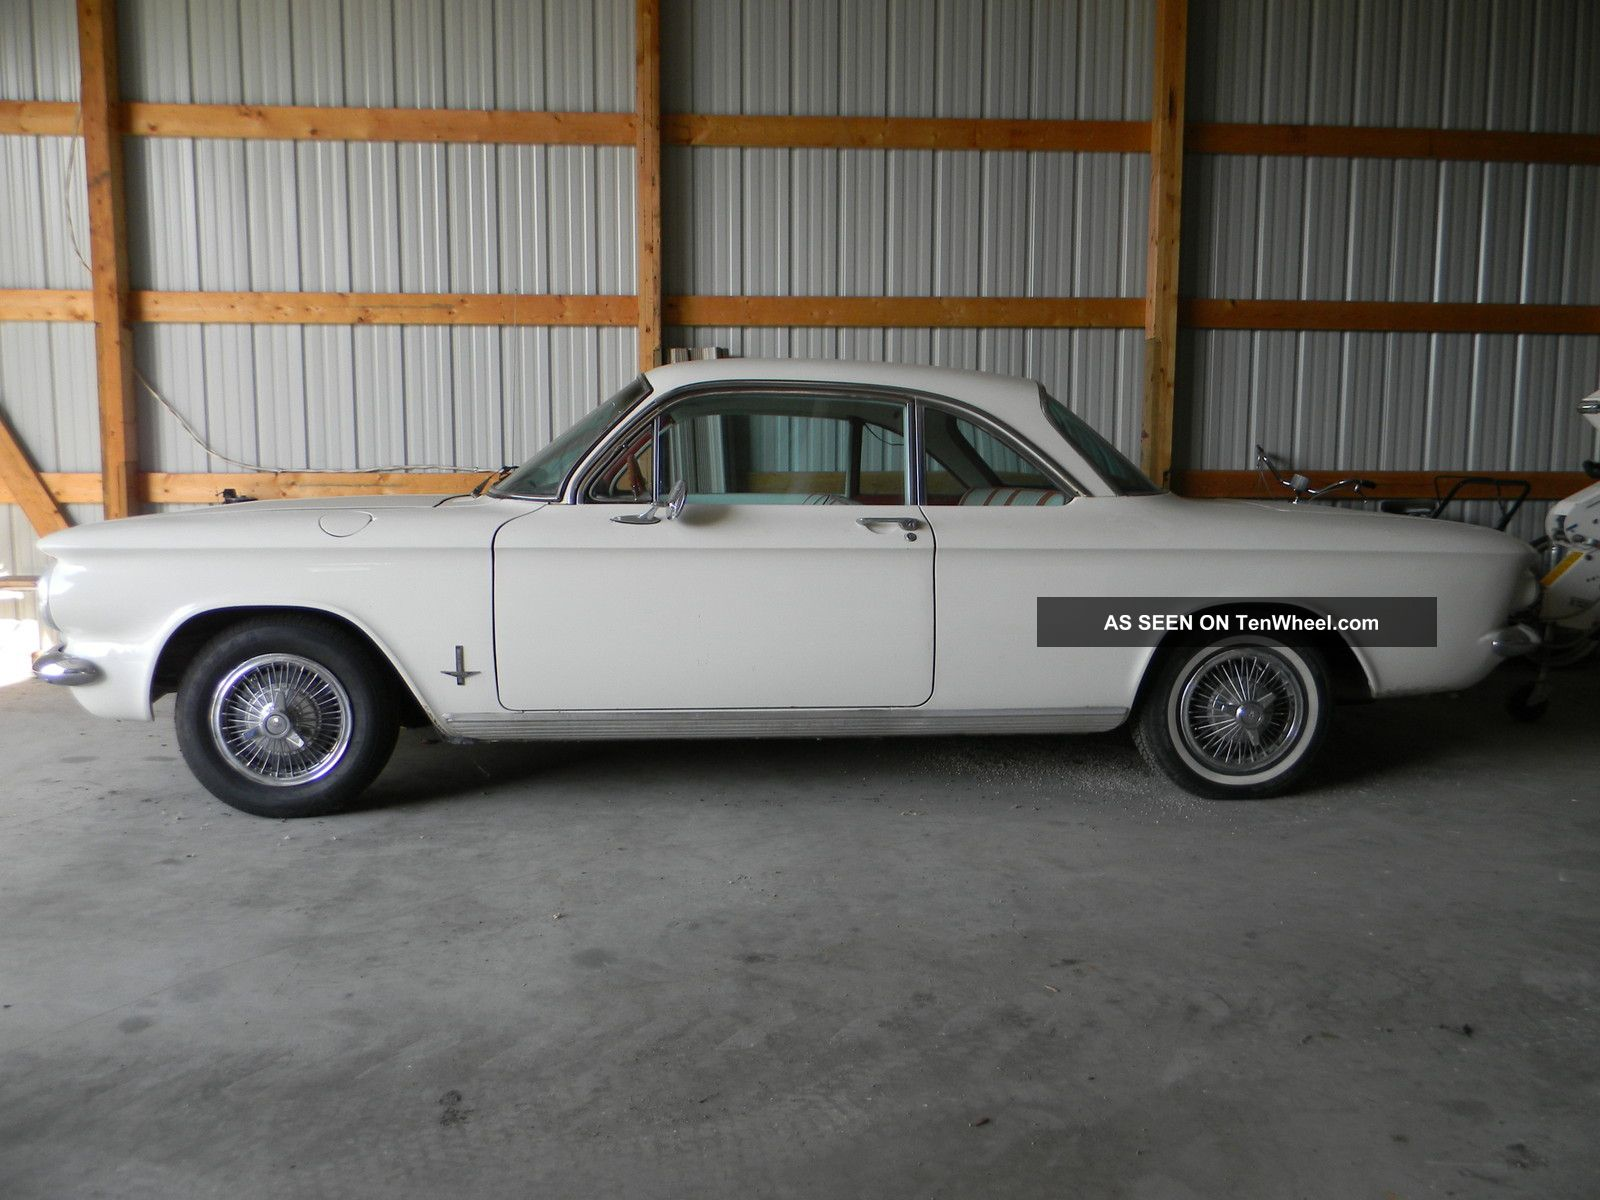 1962 Chevrolet Corvair Monza Coupe Corvair photo